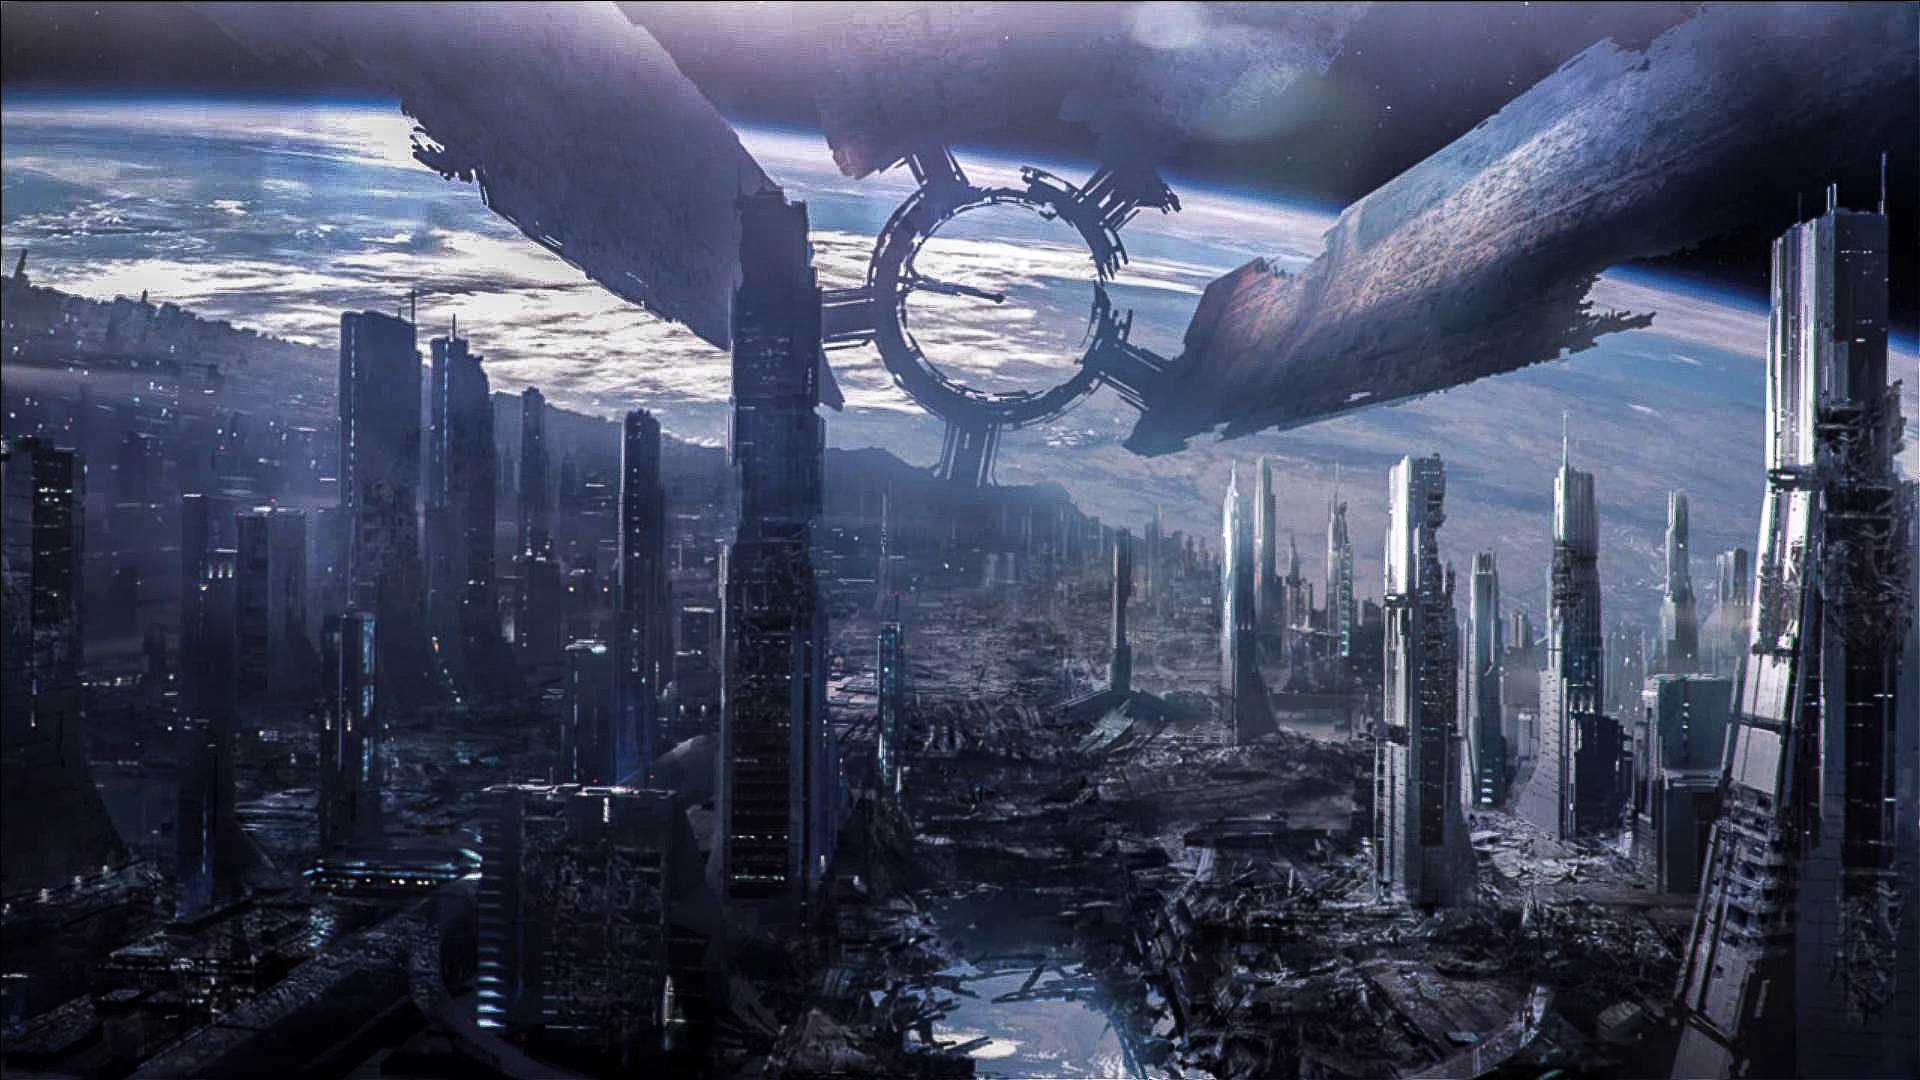 Mass Effect 3 Destroyed Citadel by droot1986 1920x1080